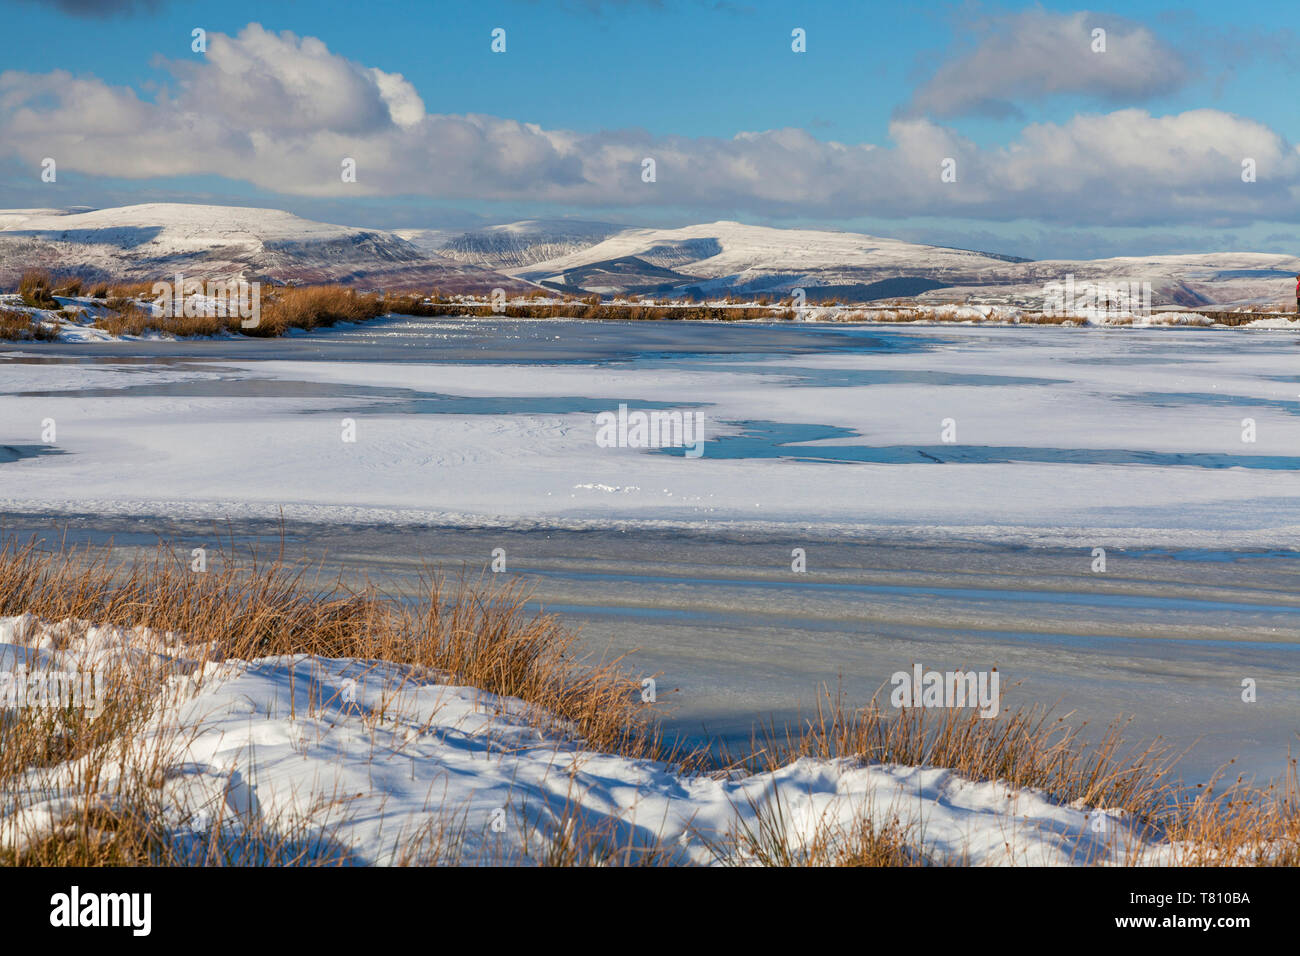 Keepers Pond, Blaenavon, Brecon Beacons, South Wales, United Kingdom, Europe Stock Photo